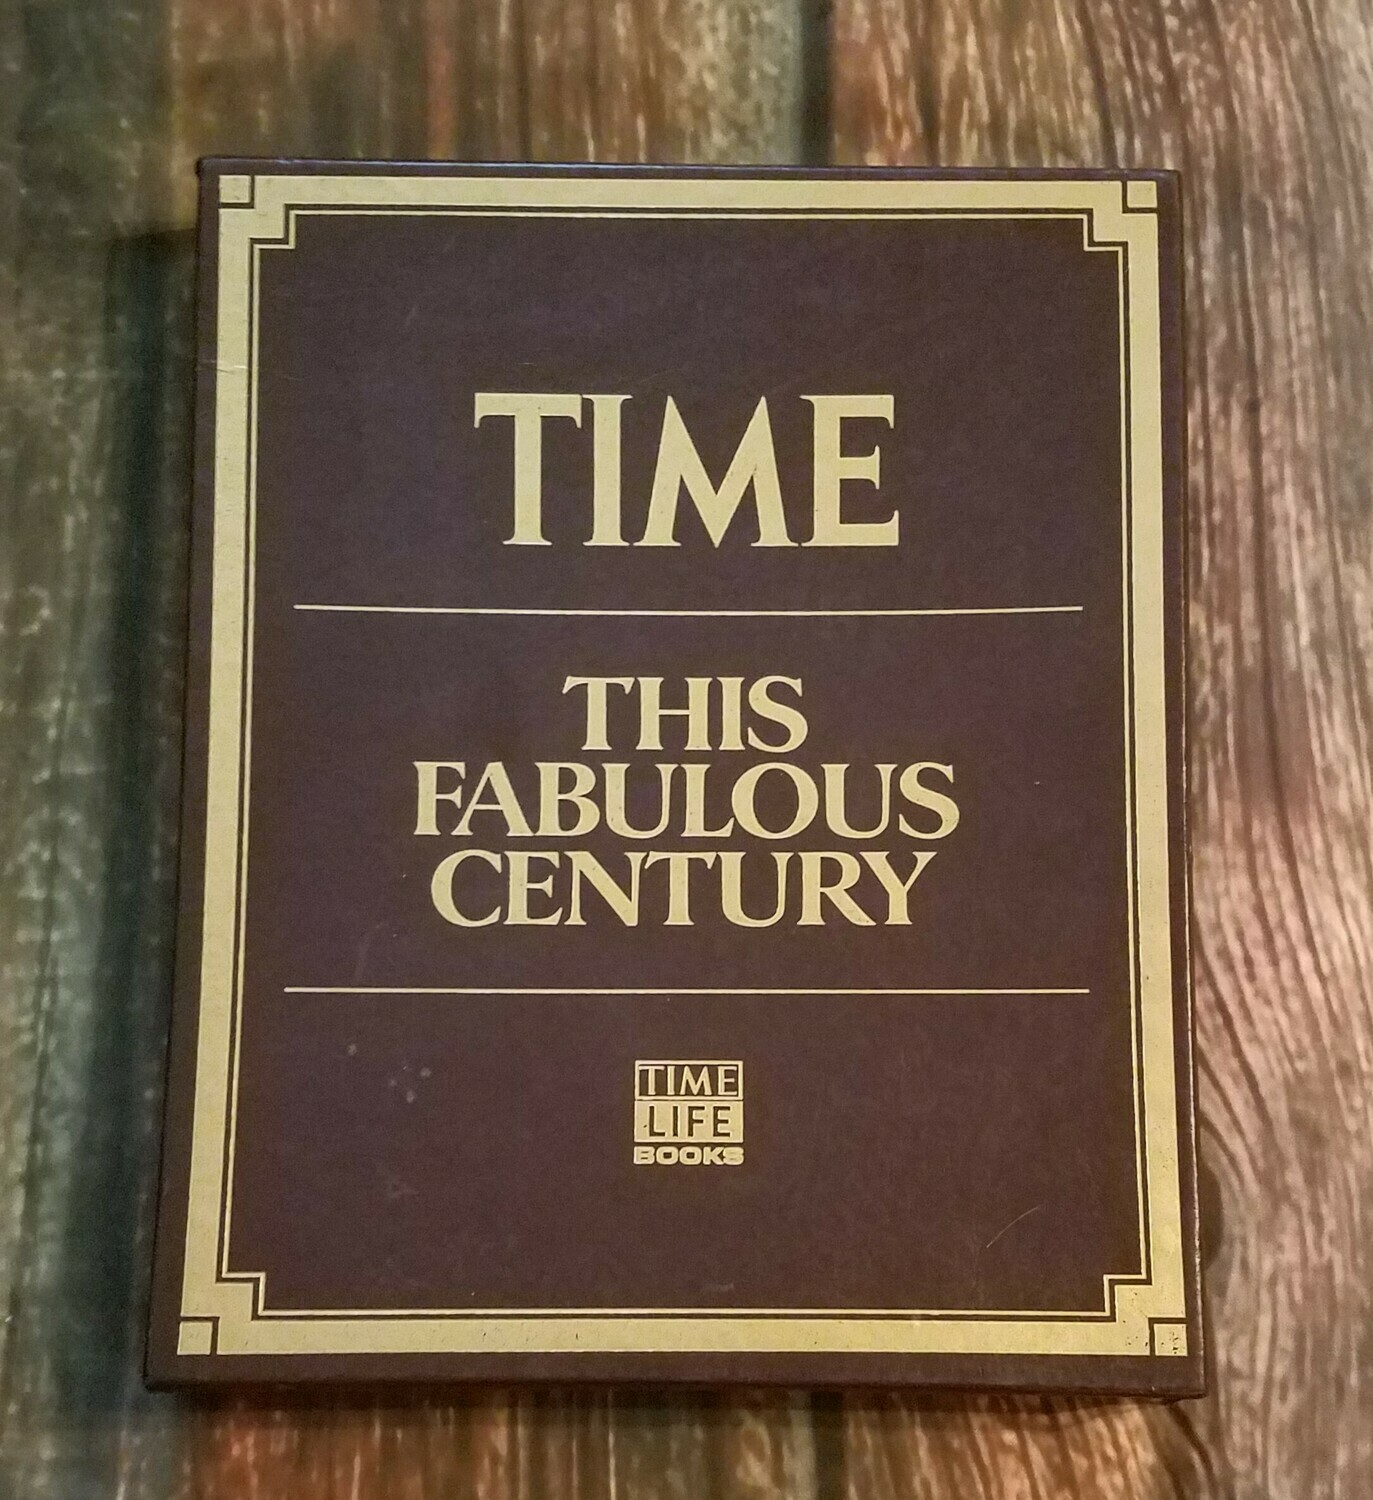 Time - This Fabulous Century by Editors of Time-Life Books